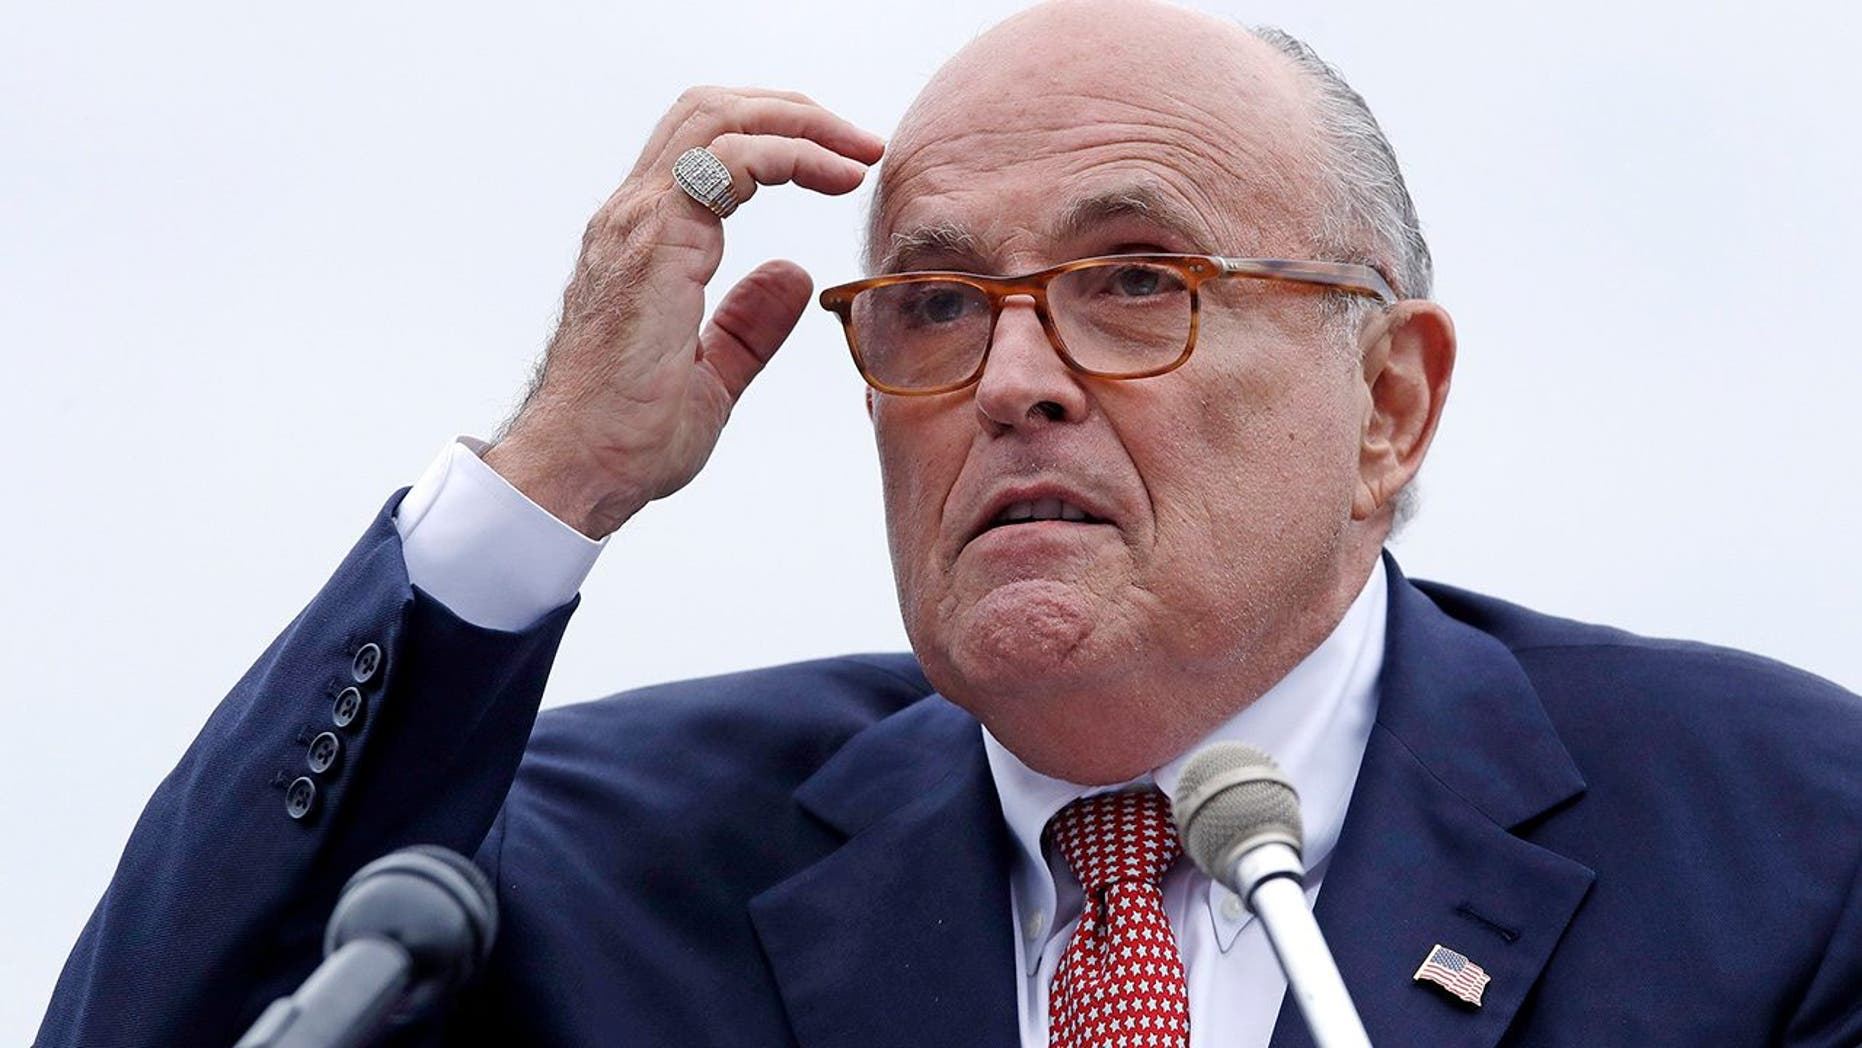 FILE - In this Aug. 1, 2018 file photo, Rudy Giuliani, an attorney for President Donald Trump, addresses a gathering during a campaign event for Eddie Edwards, who is running for the U.S. Congress, in Portsmouth, N.H. President Donald Trump will not answer any questions, written or in-person, about possible obstruction of justice, Giuliani told The Associated Press. Giuliani's statement was the most definitive rejection yet of Special Counsel Robert Mueller's efforts to interview the president about any efforts to block the investigation into possible coordination between his campaign and Russians. (AP Photo/Charles Krupa, File )<br>